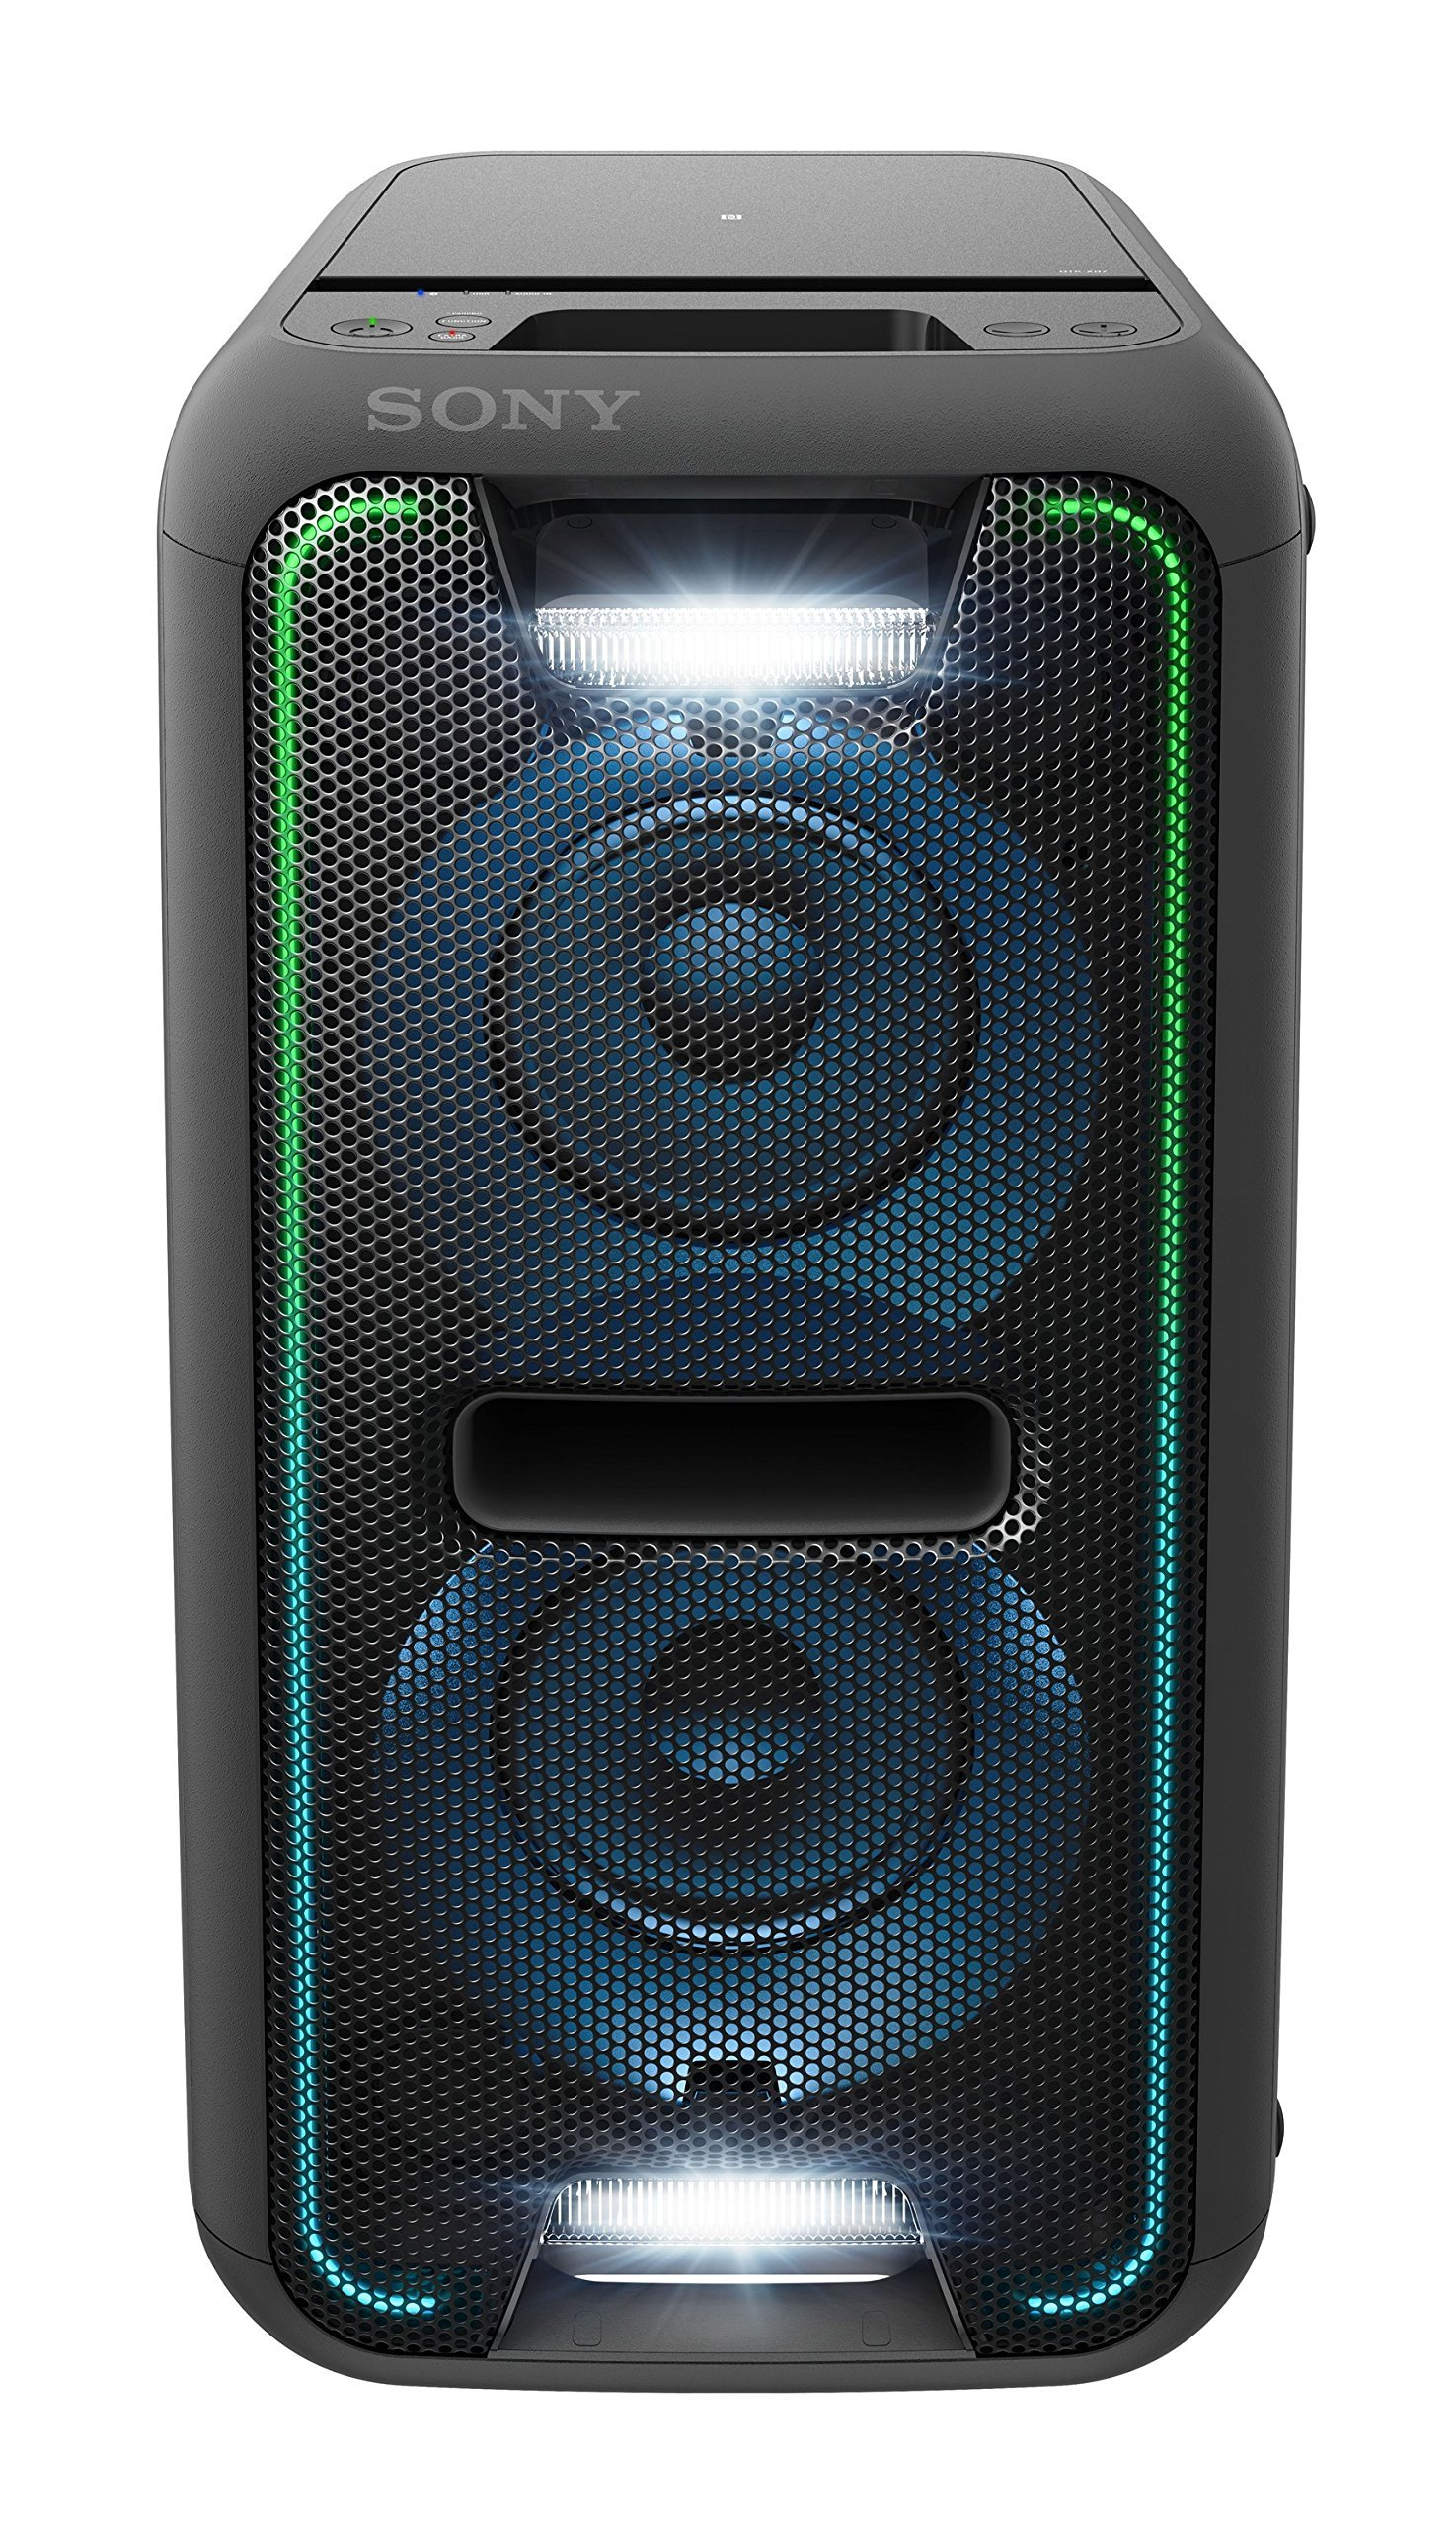 Sony GTKXB7BC High Power Home Audio System with Bluetooth (Black) (Renewed) by Sony (Image #3)